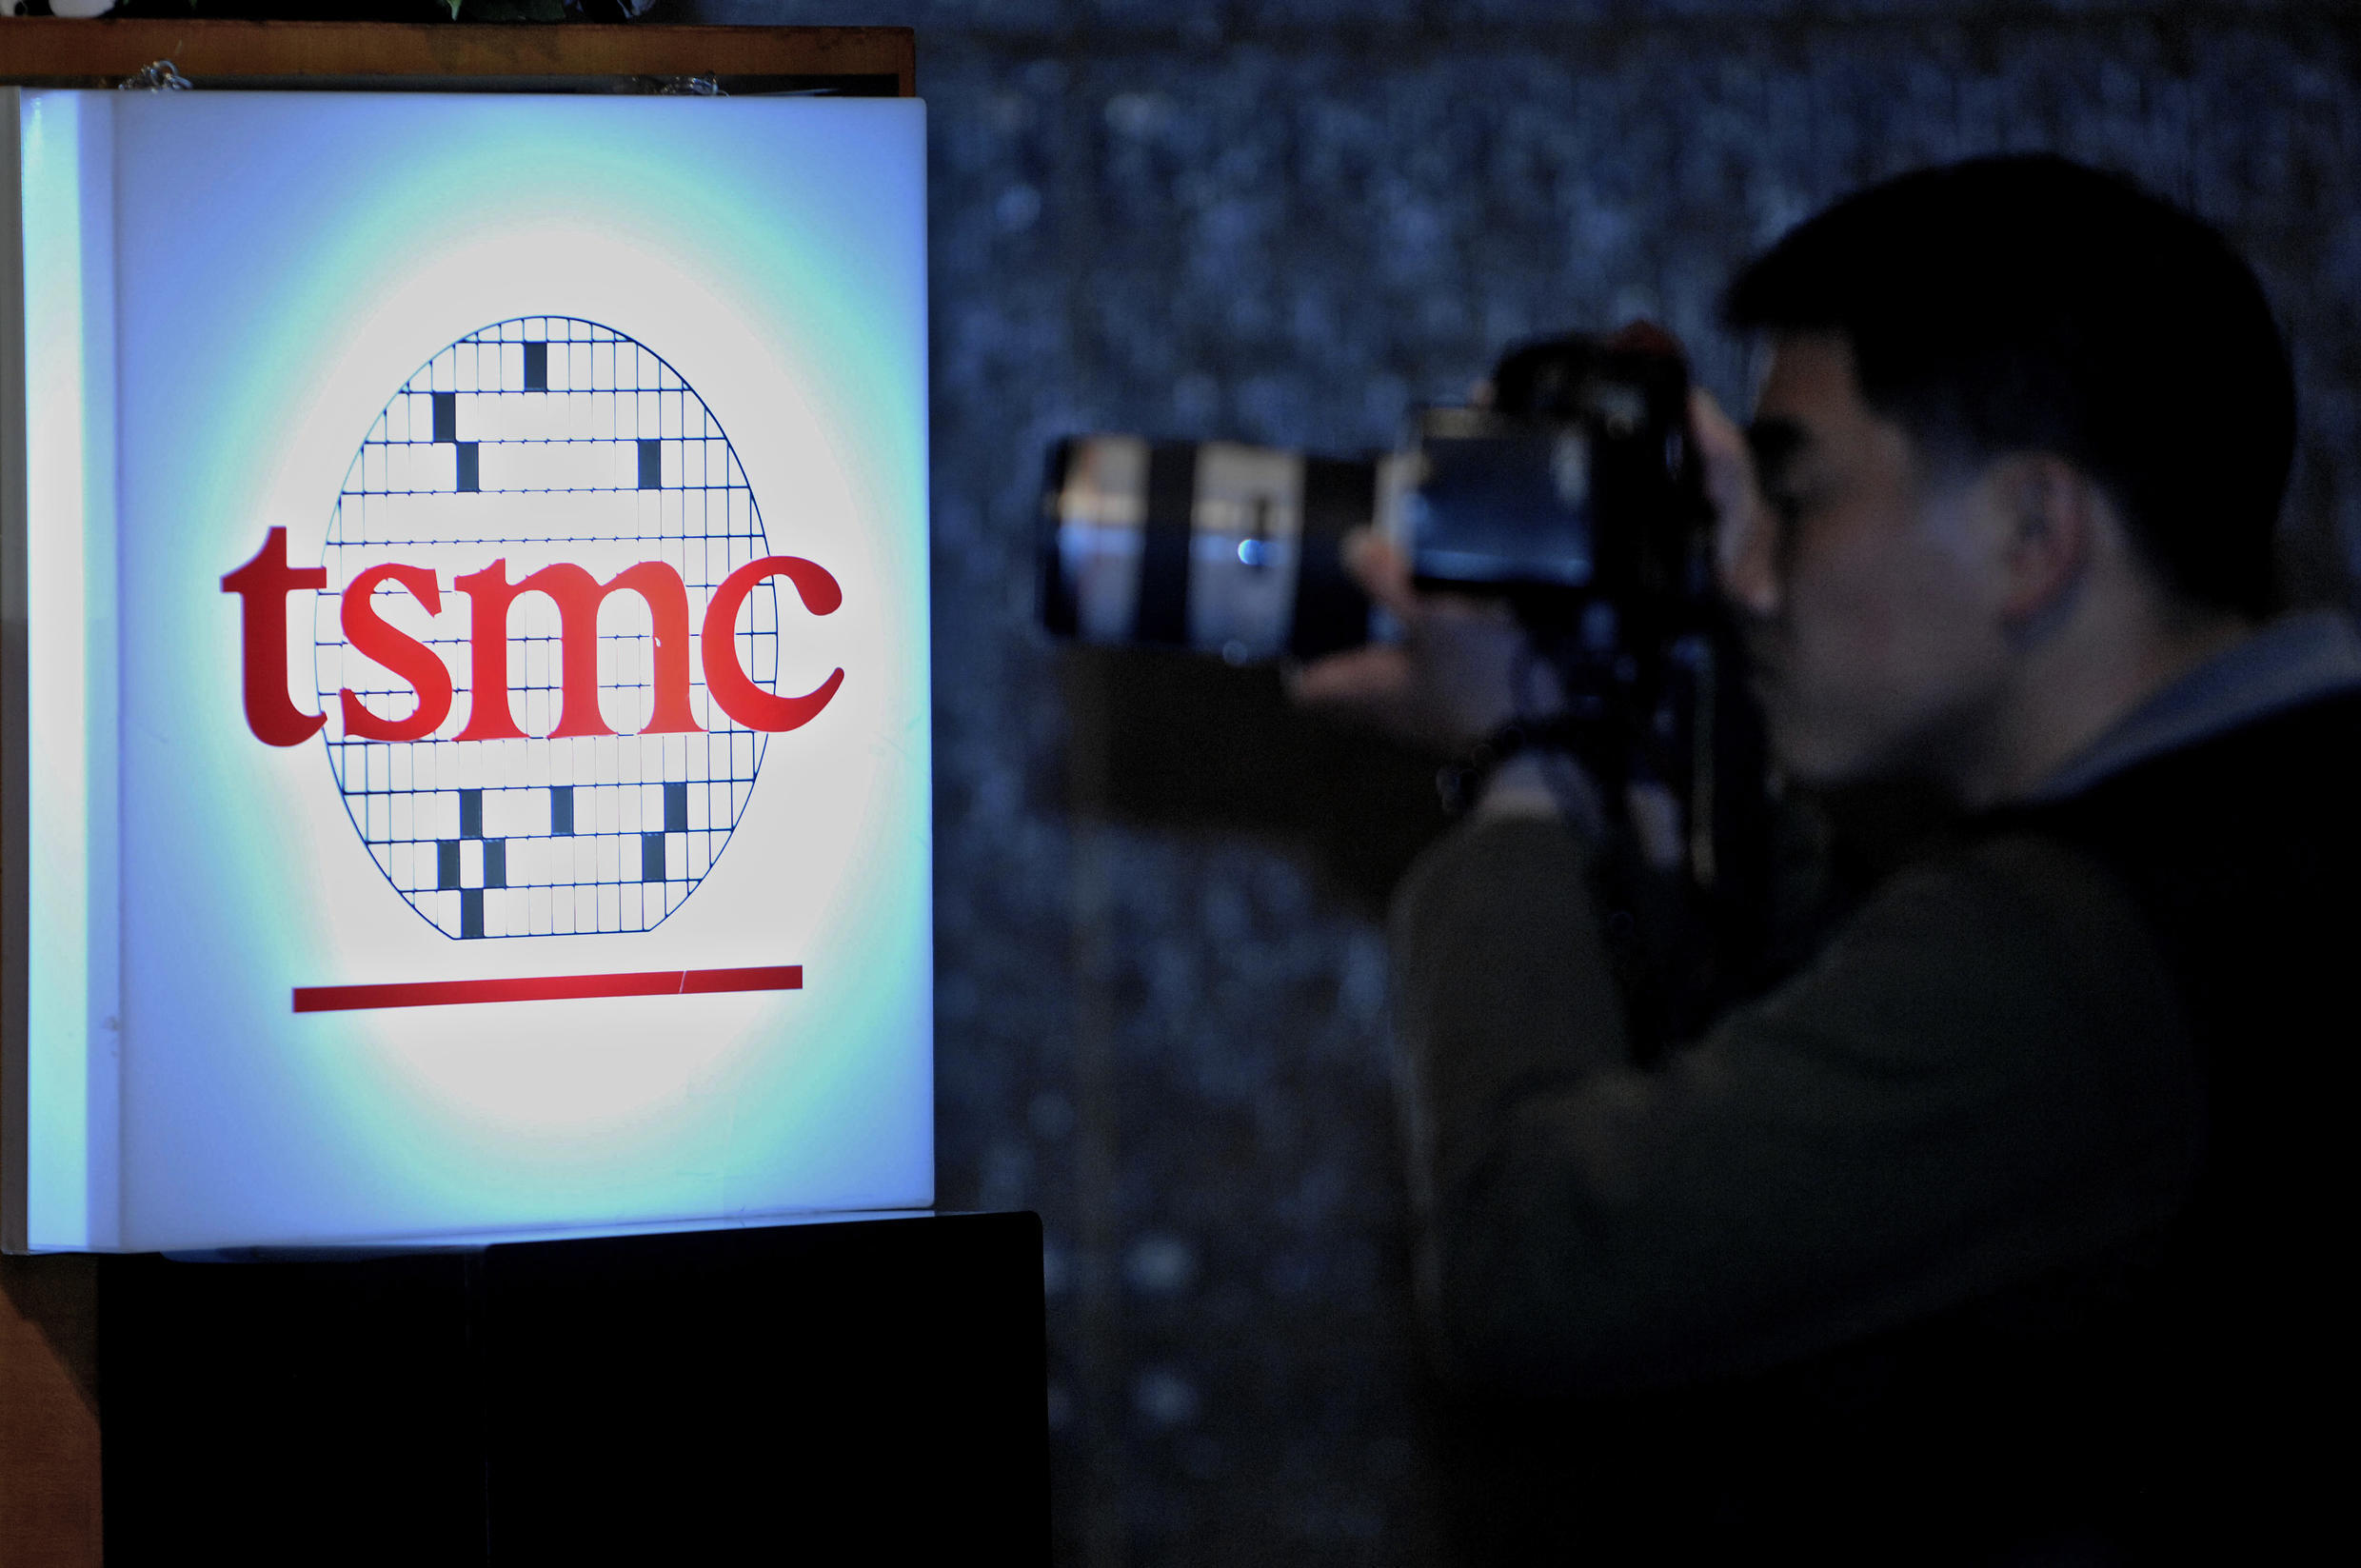 Observers said TSMC rallied following news that US giant Intel had been forced to place orders with rivals owing to delays with its own next-generation chip.